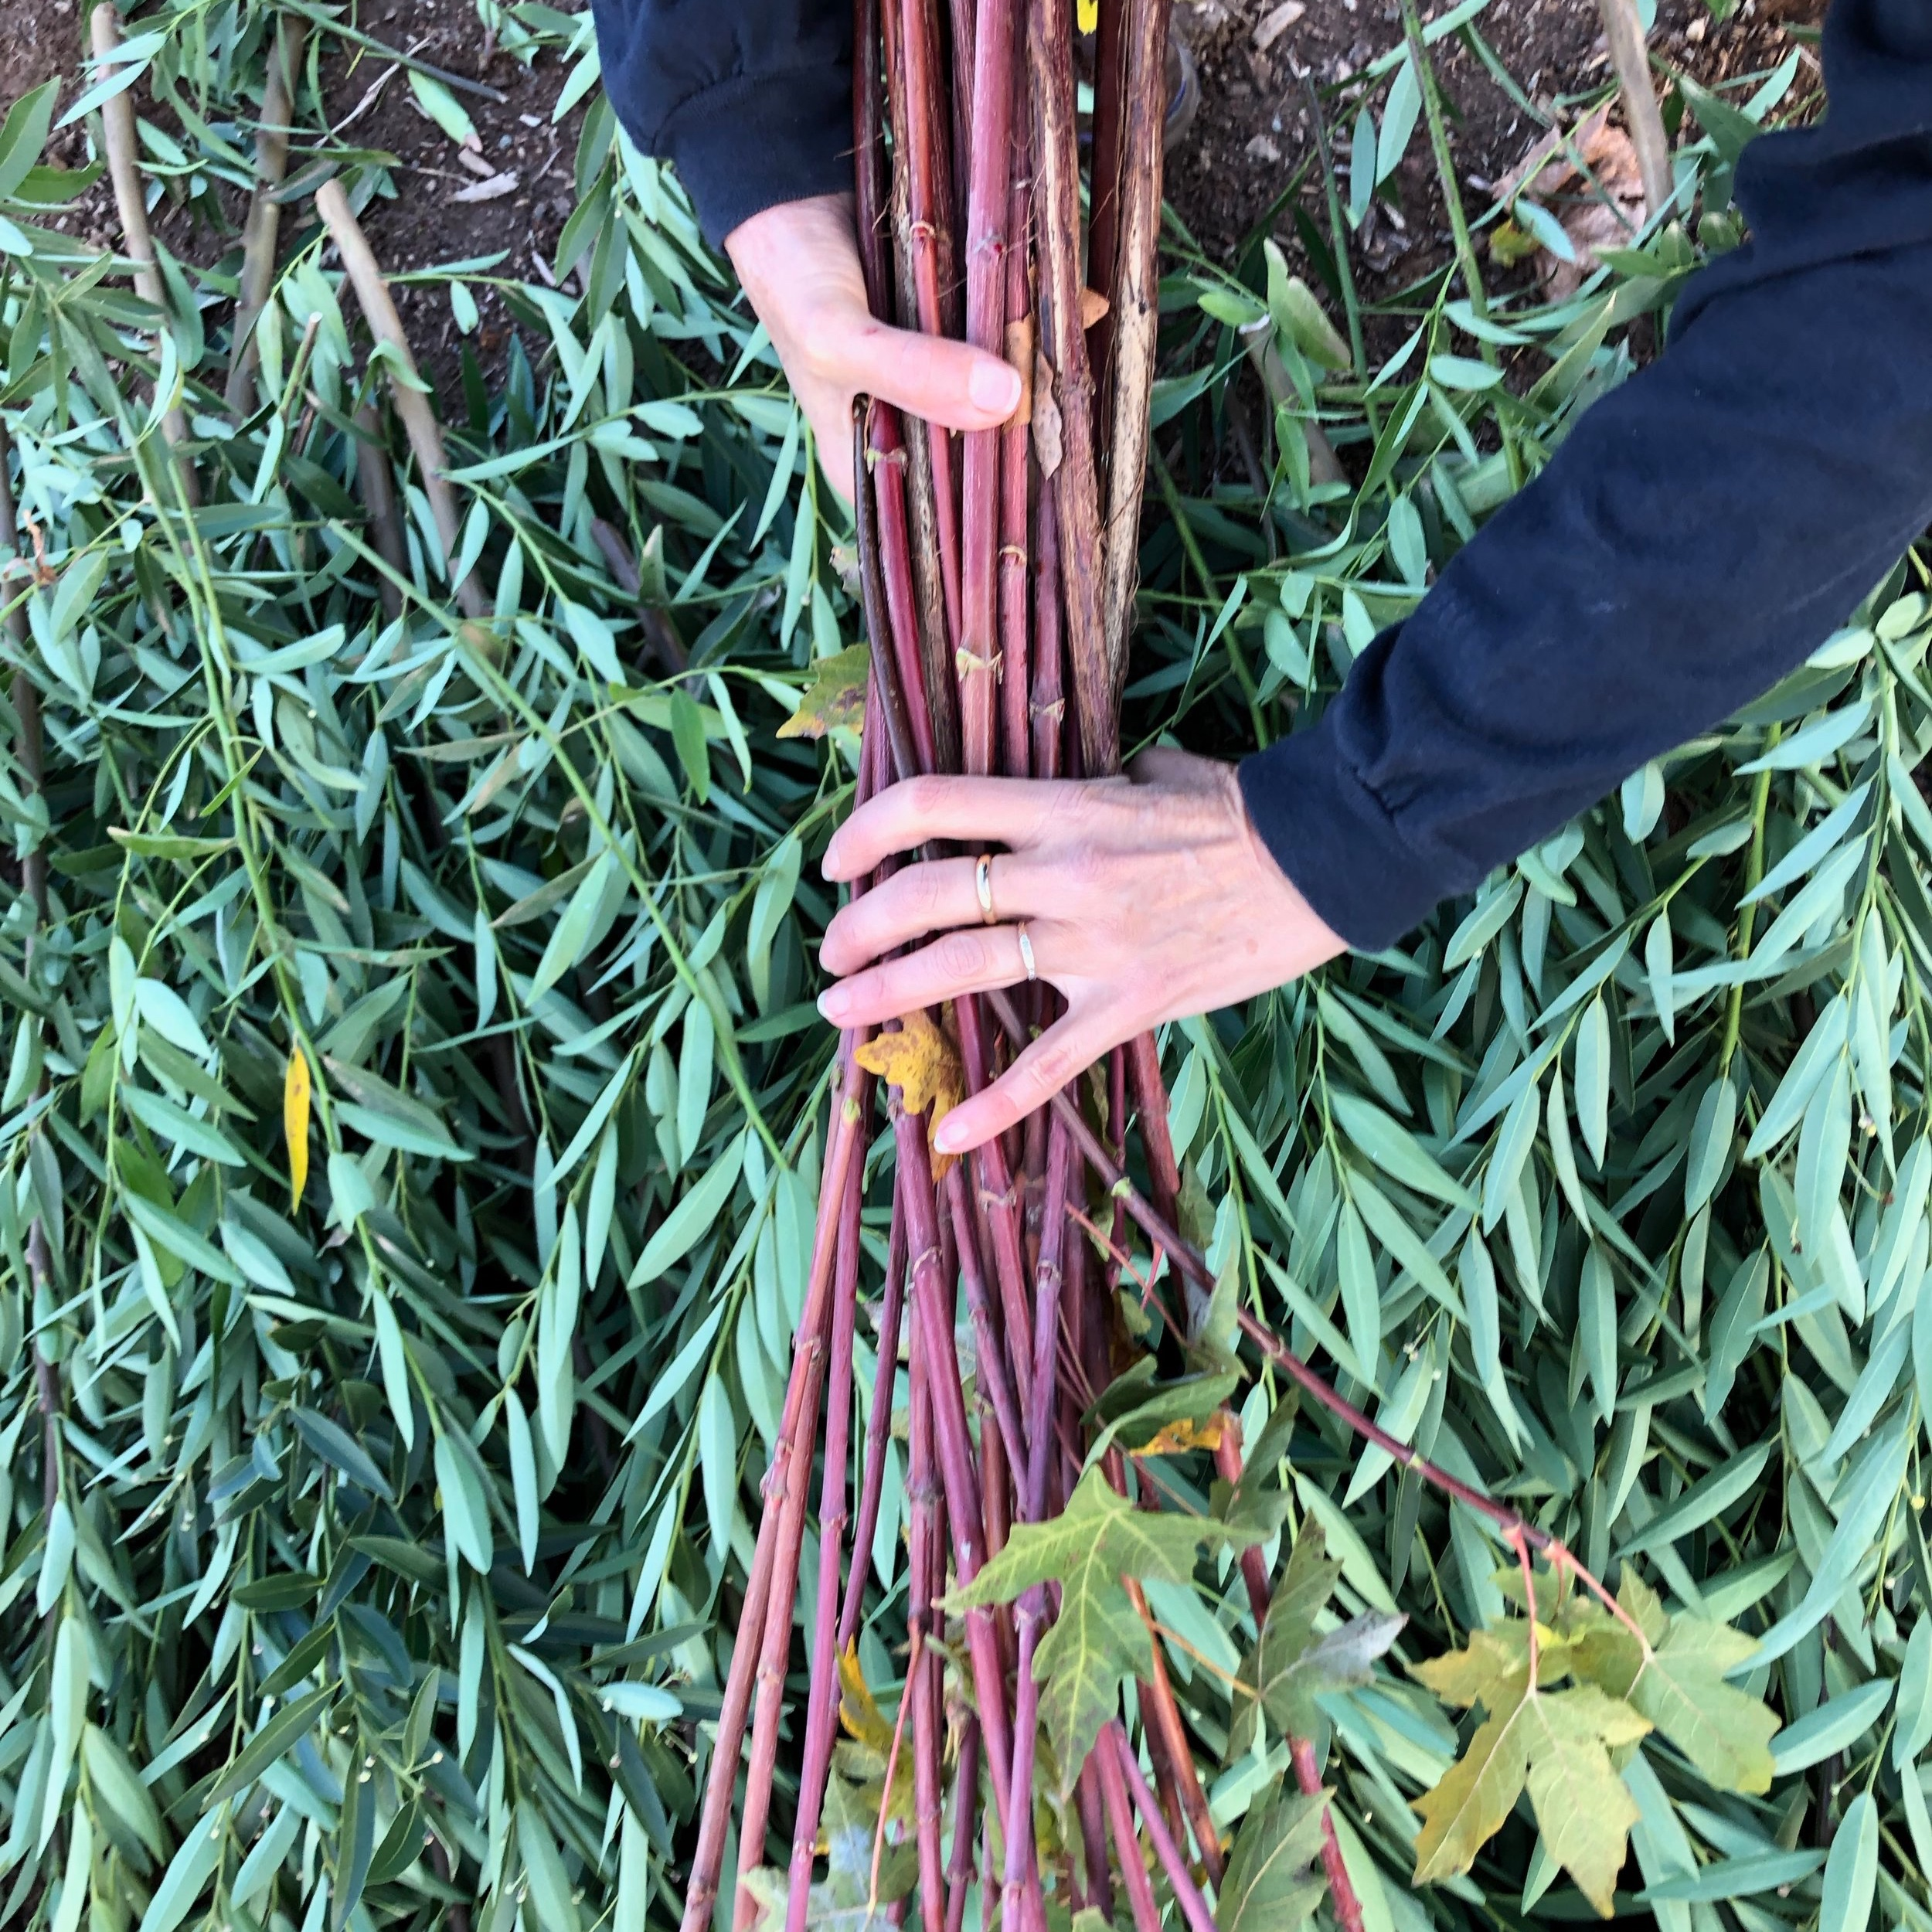 BUNCHED GREENS - Fragrant Bay, Acacia, Native Grasses, Blooms, Jasmine, Ivy, Pittosporum, Bamboo, and more